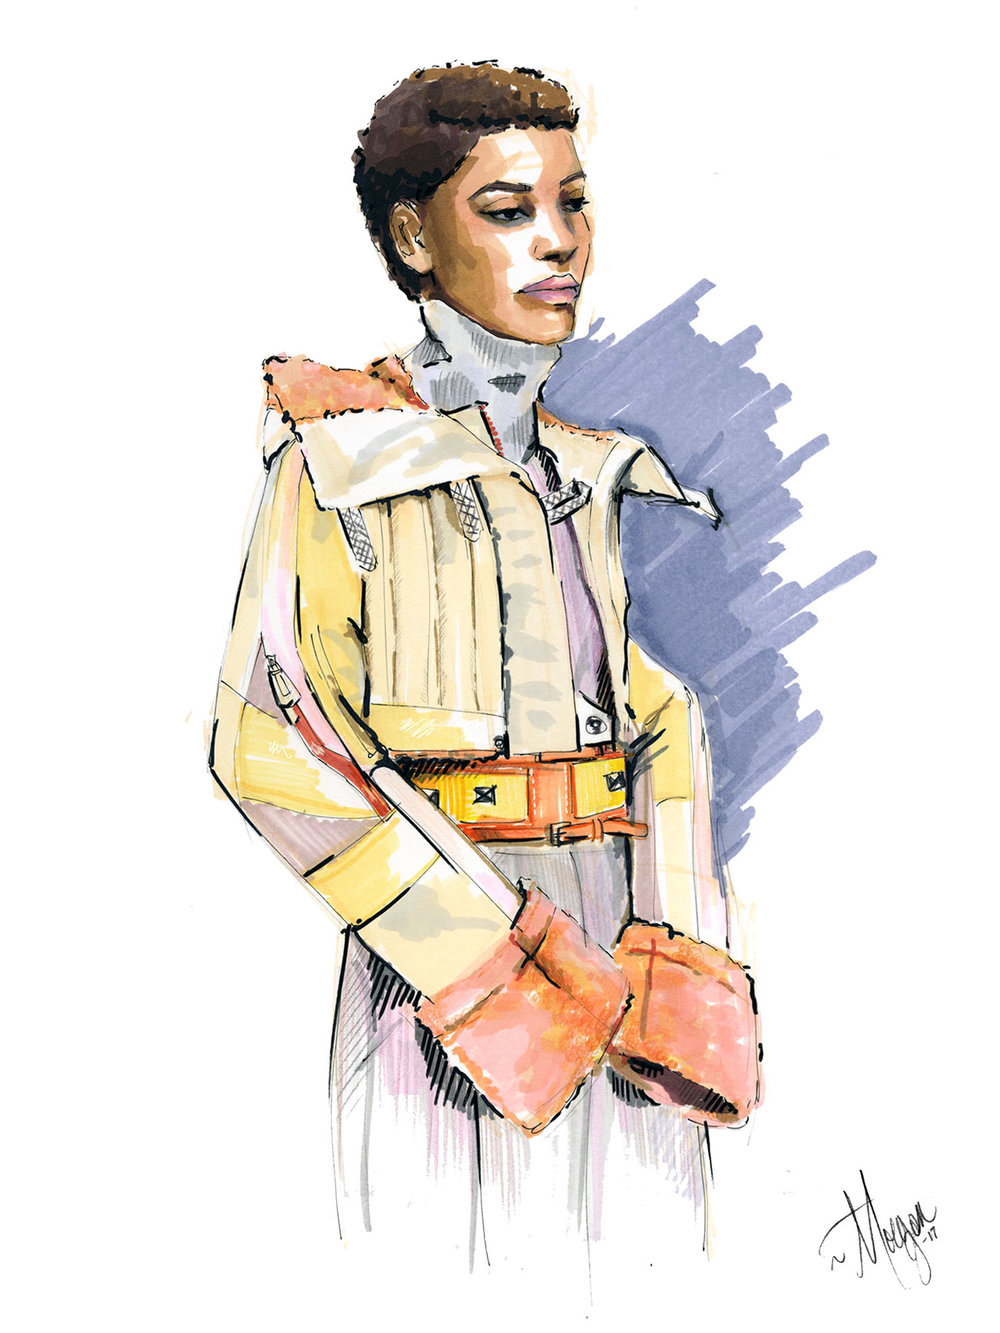 hermes-fall-2017-illustration-morgan-swank-studio.jpg